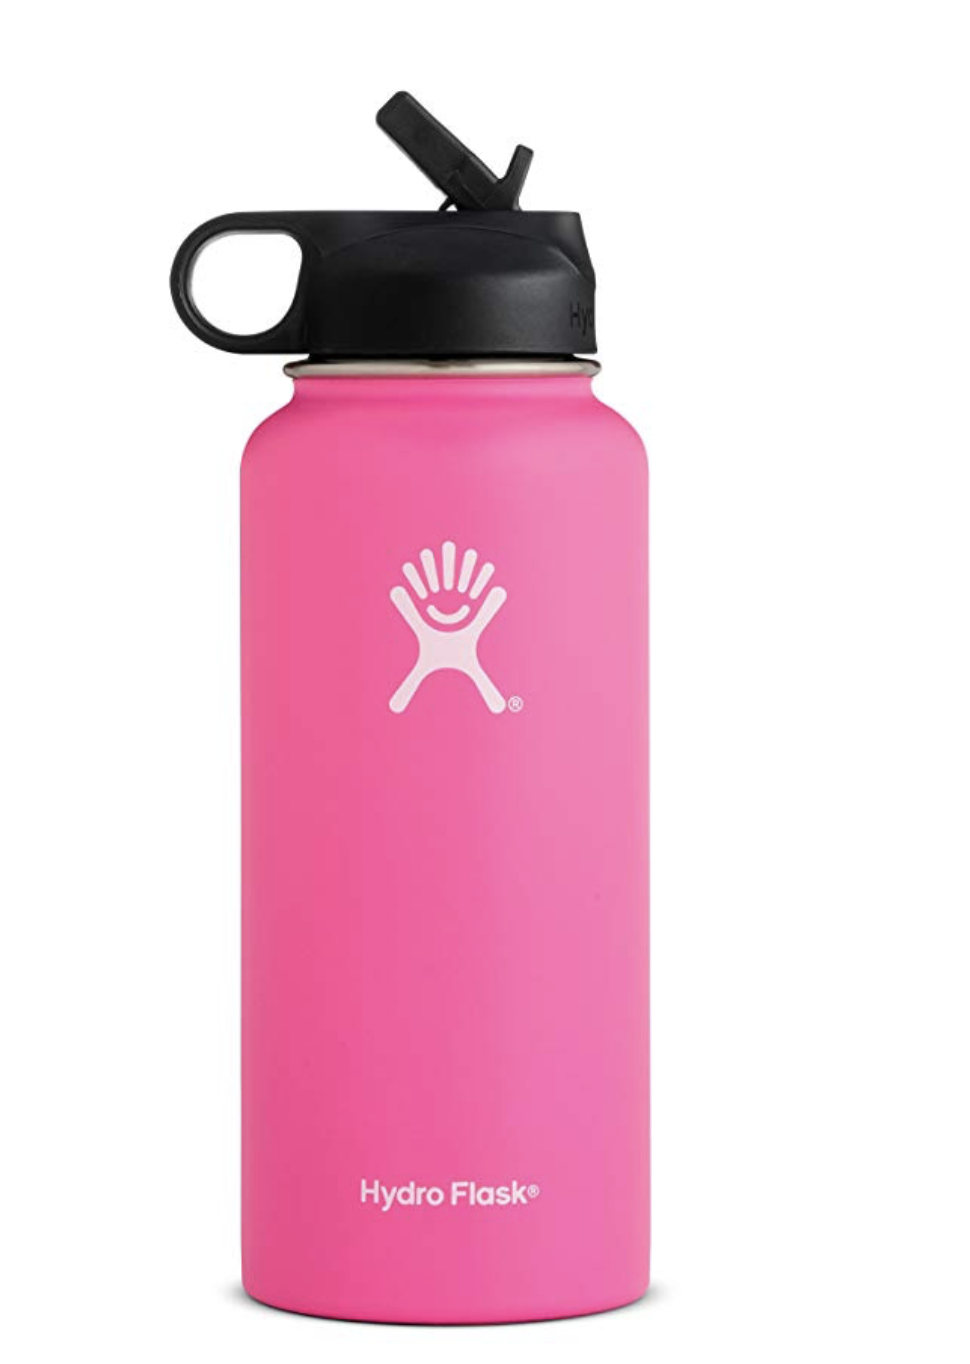 hydroflask.png